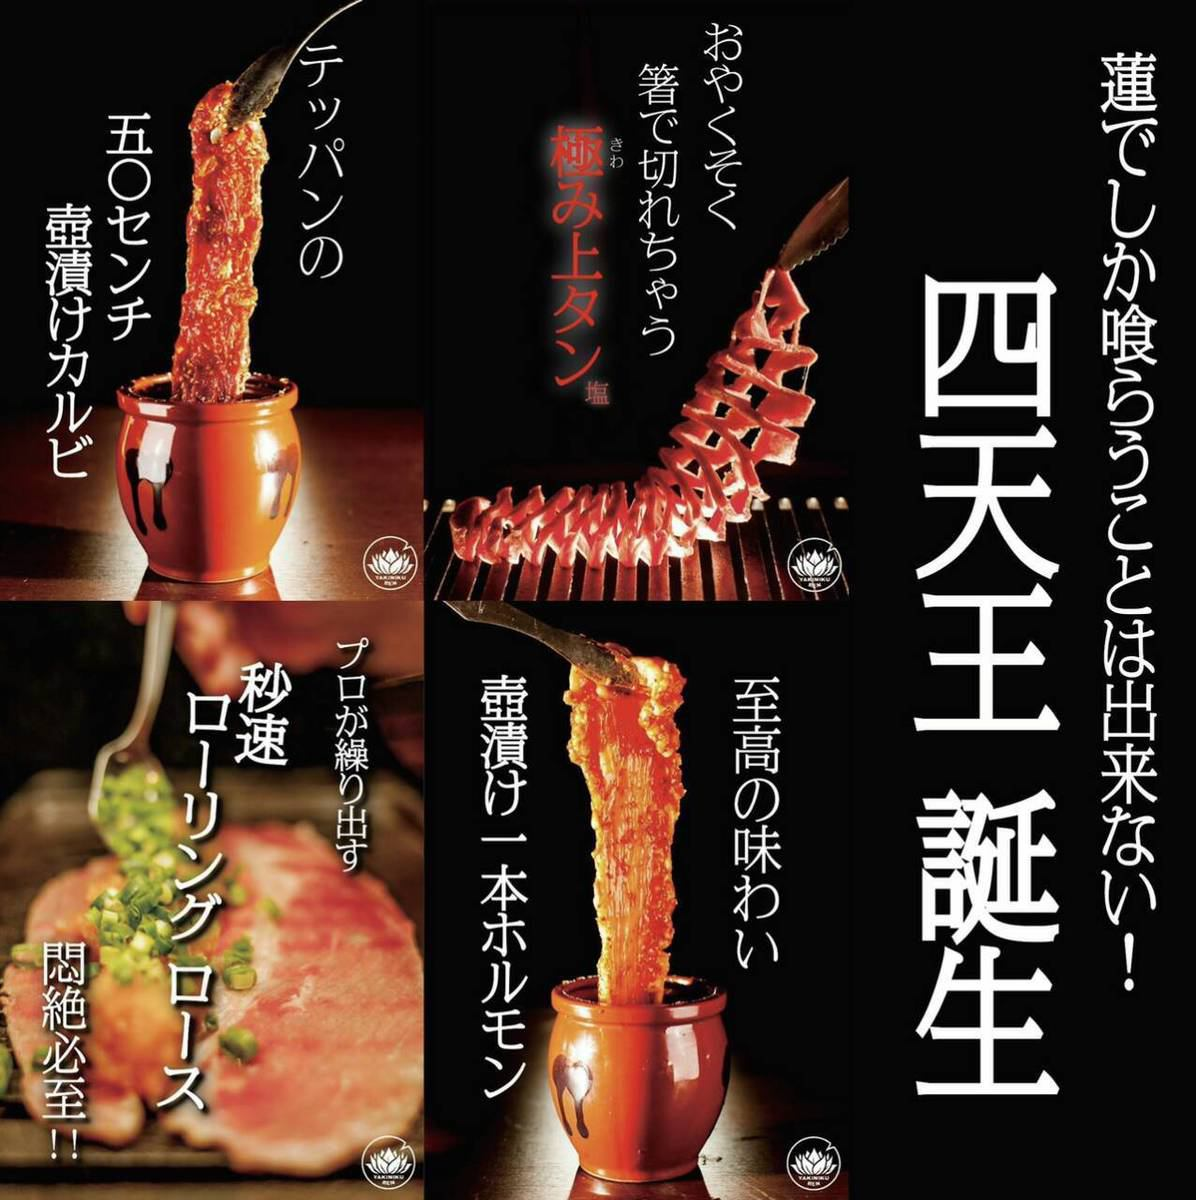 Please ♪ a delicious grilled meat different from the other [♪ roast lotus smile gather]